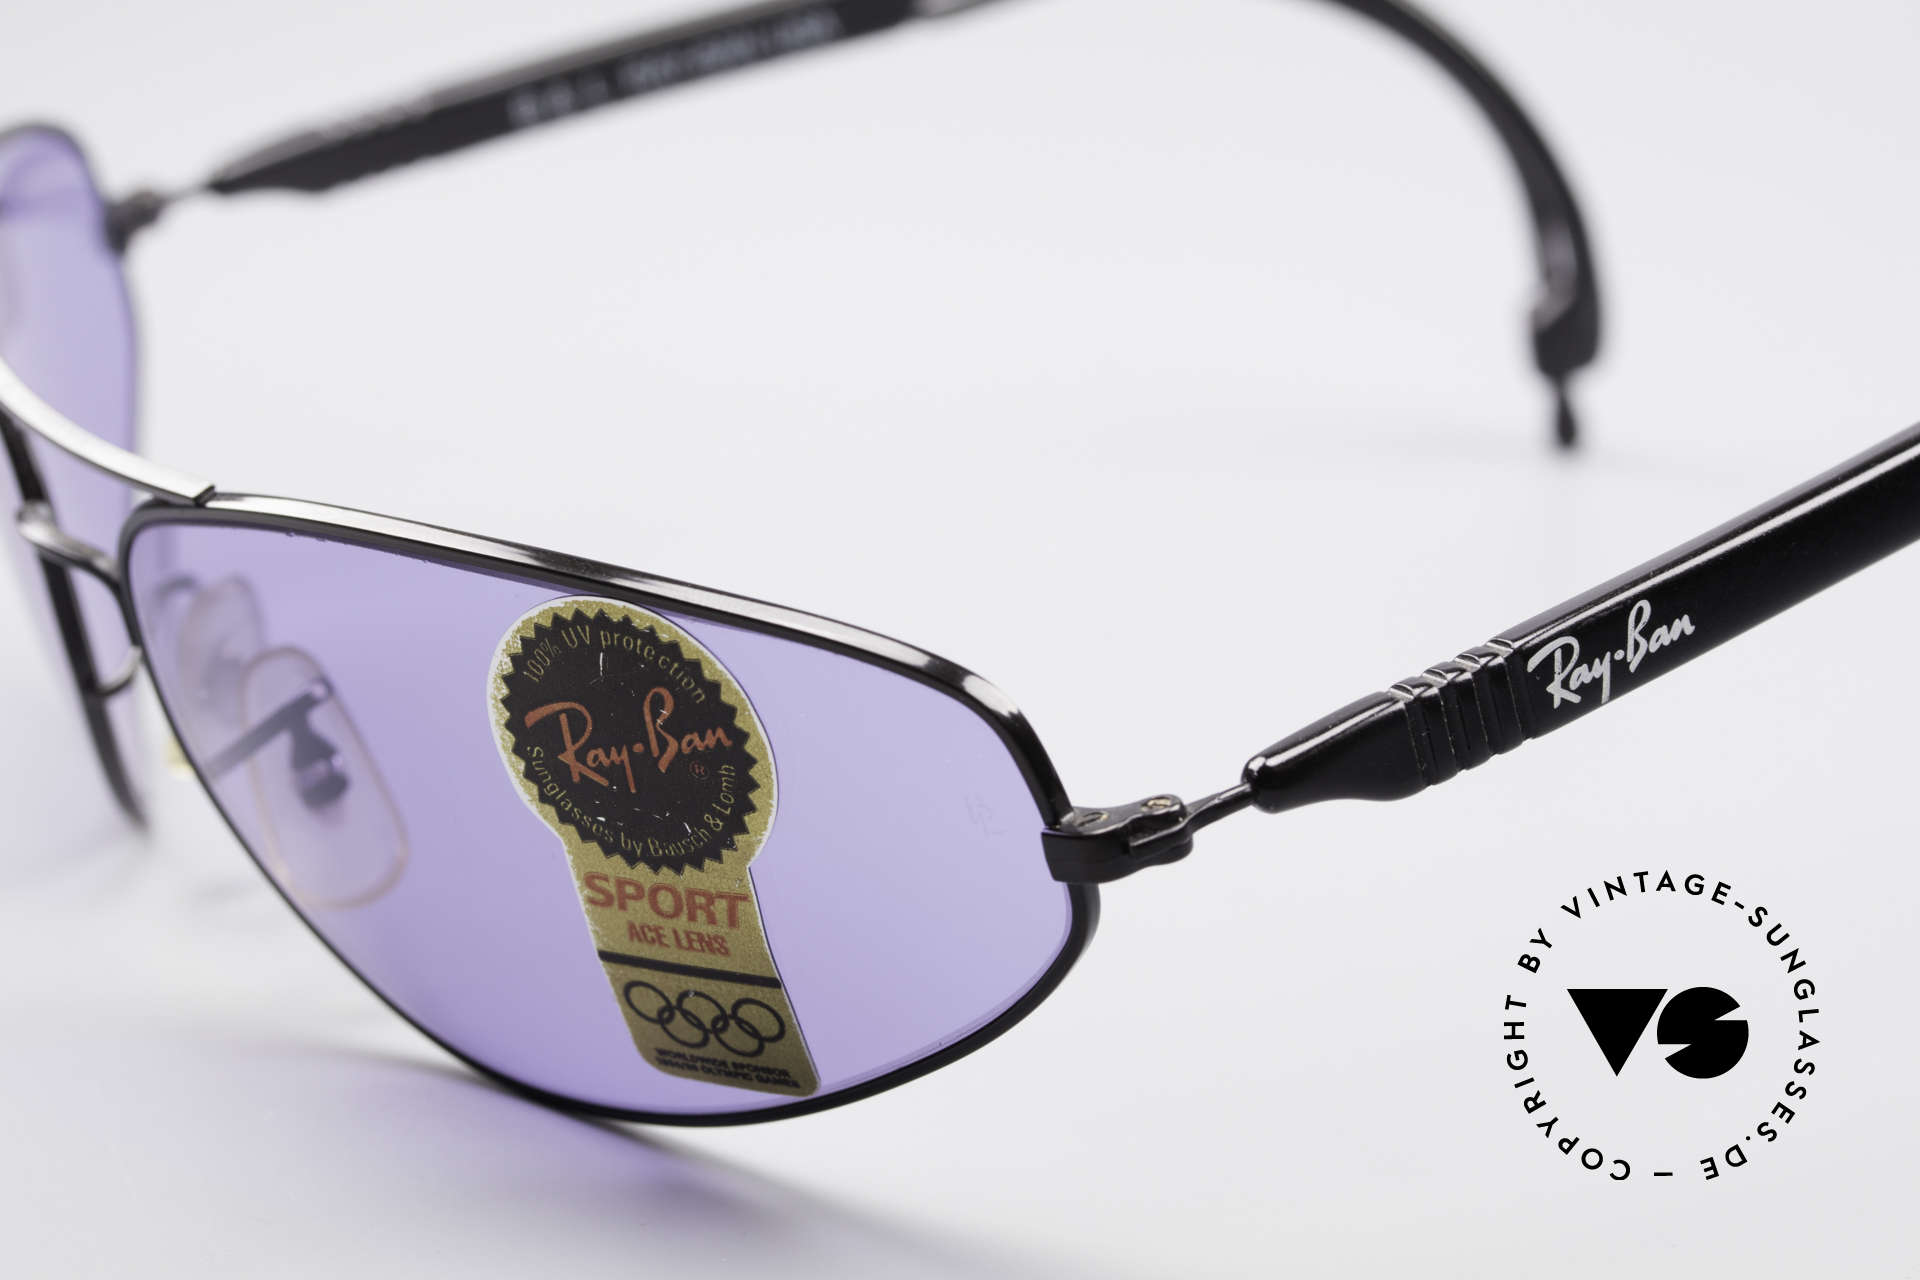 Ray Ban Sport Series 3 ACE Chromax B&L Sun Lenses, NO RETRO sunglasses, but an old USA-ORIGINAL, Made for Men